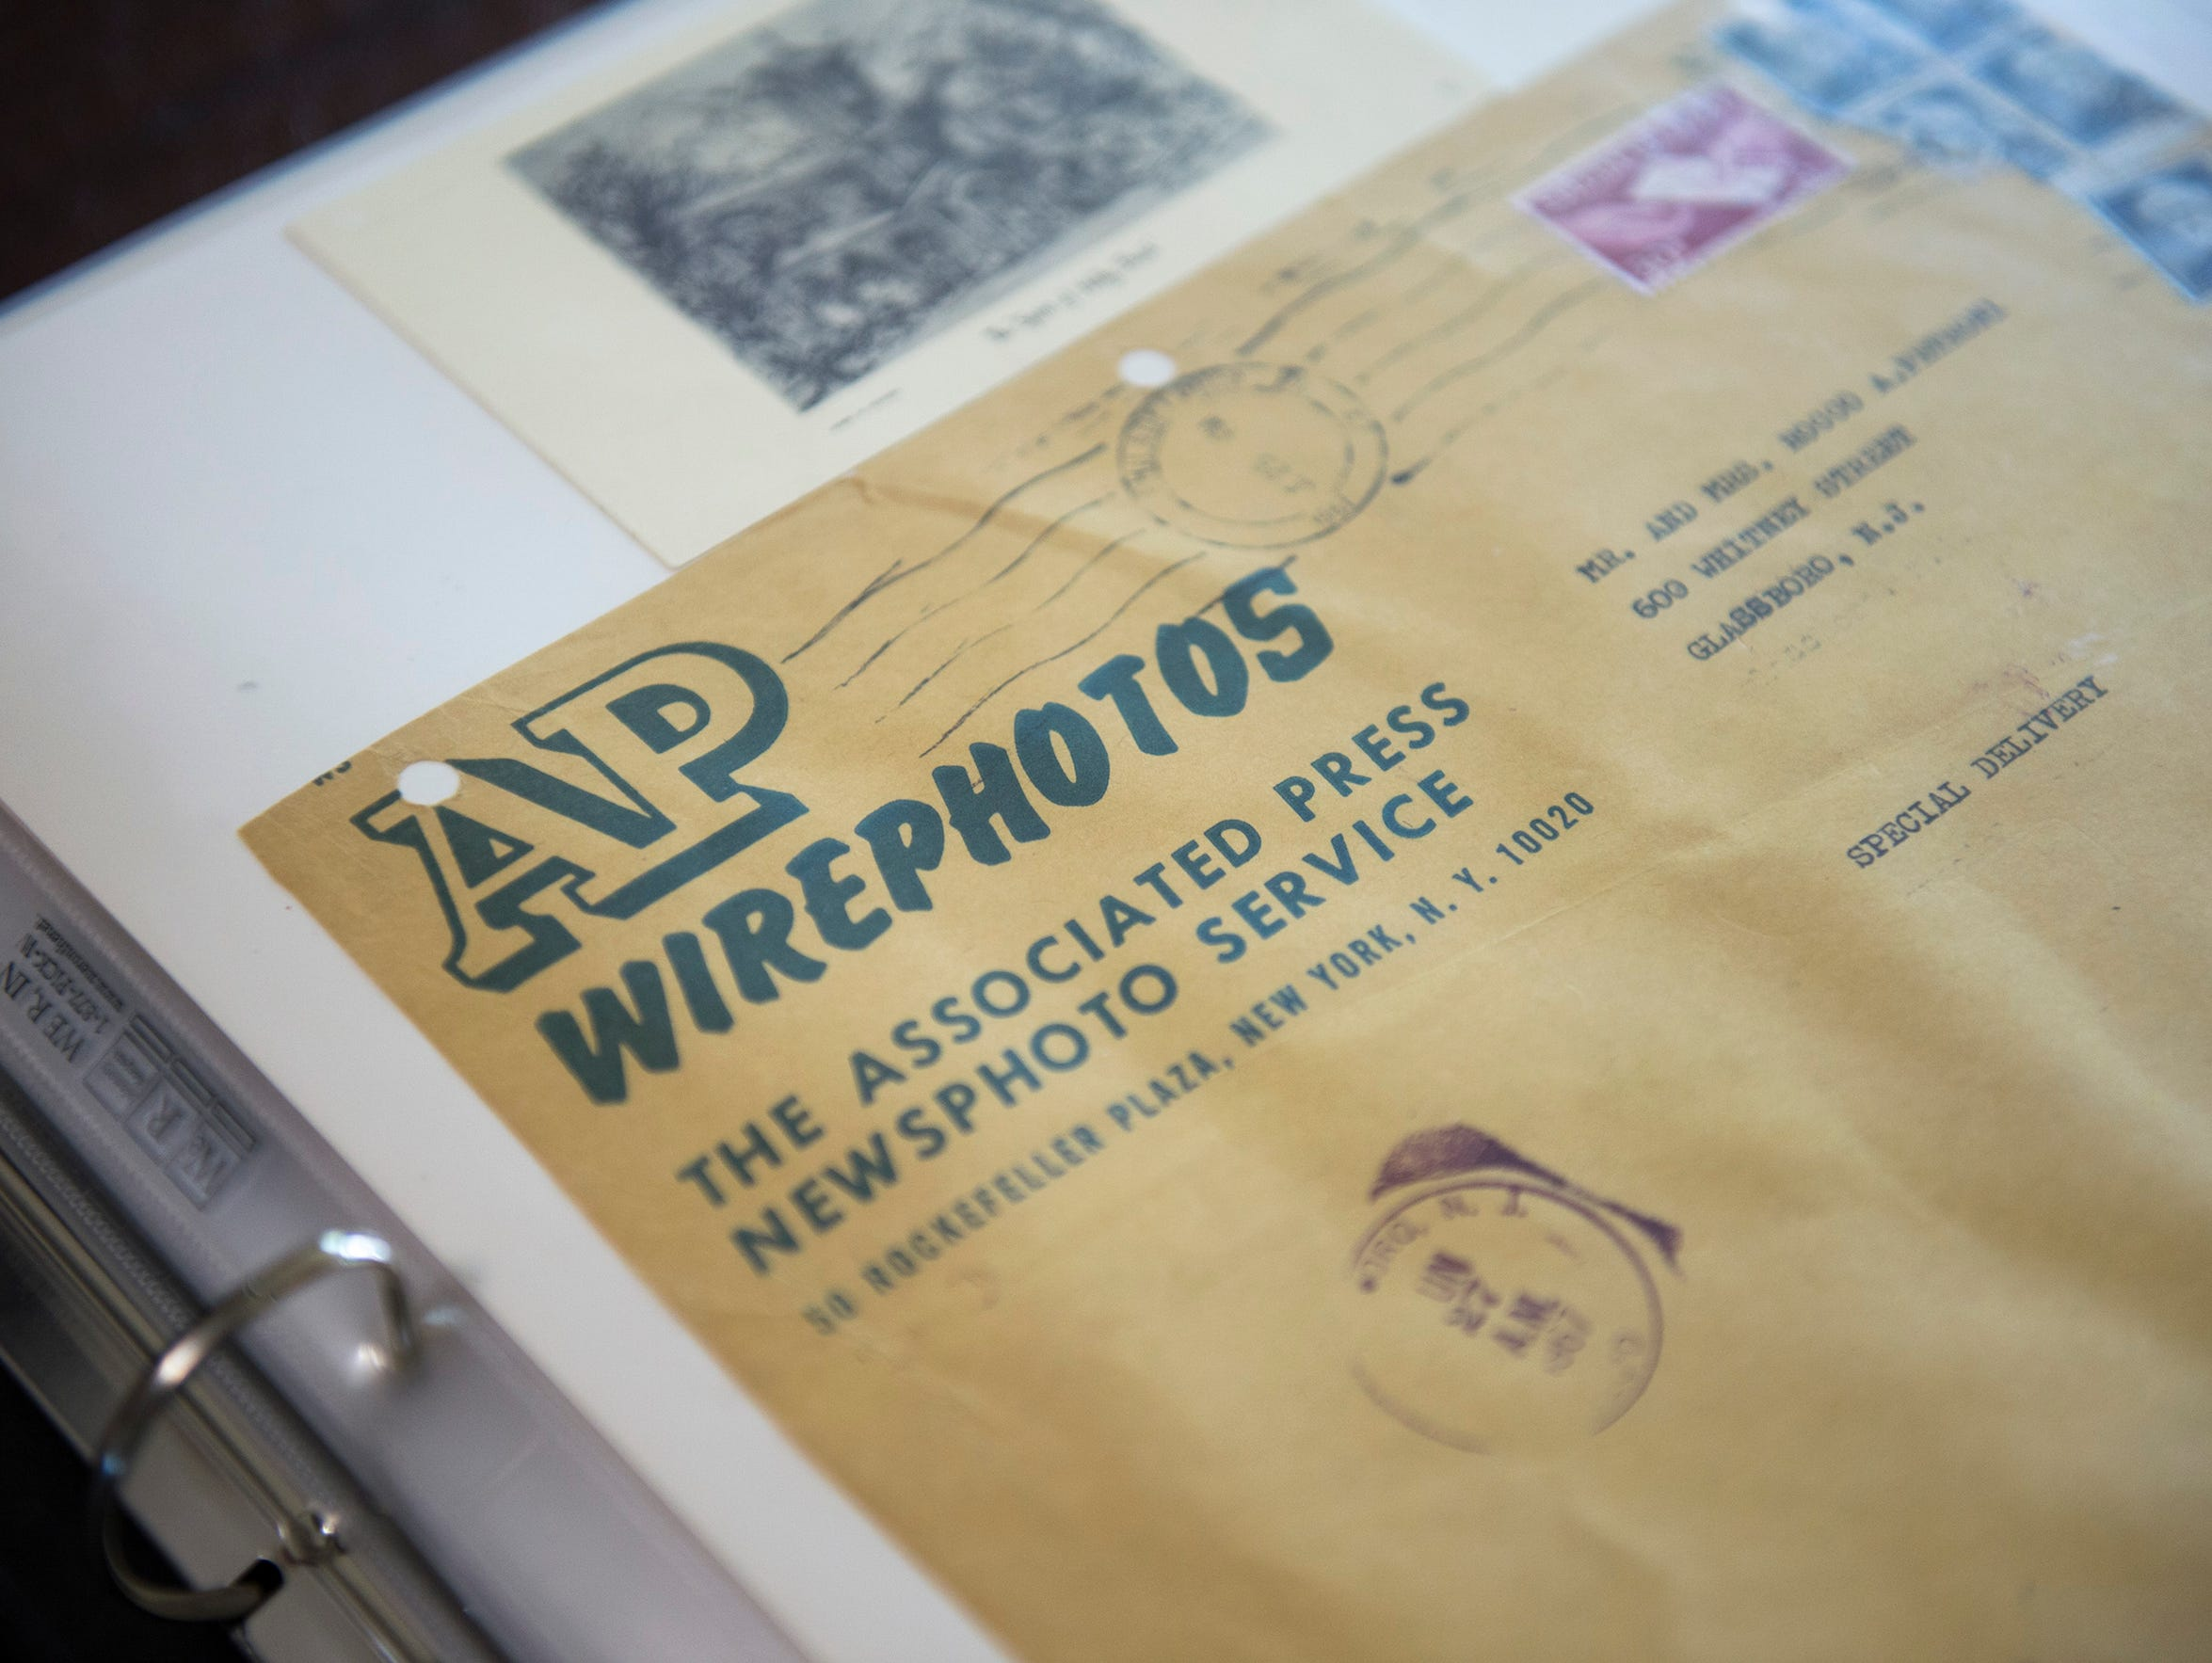 An envelope from the Associated Press that held pictures